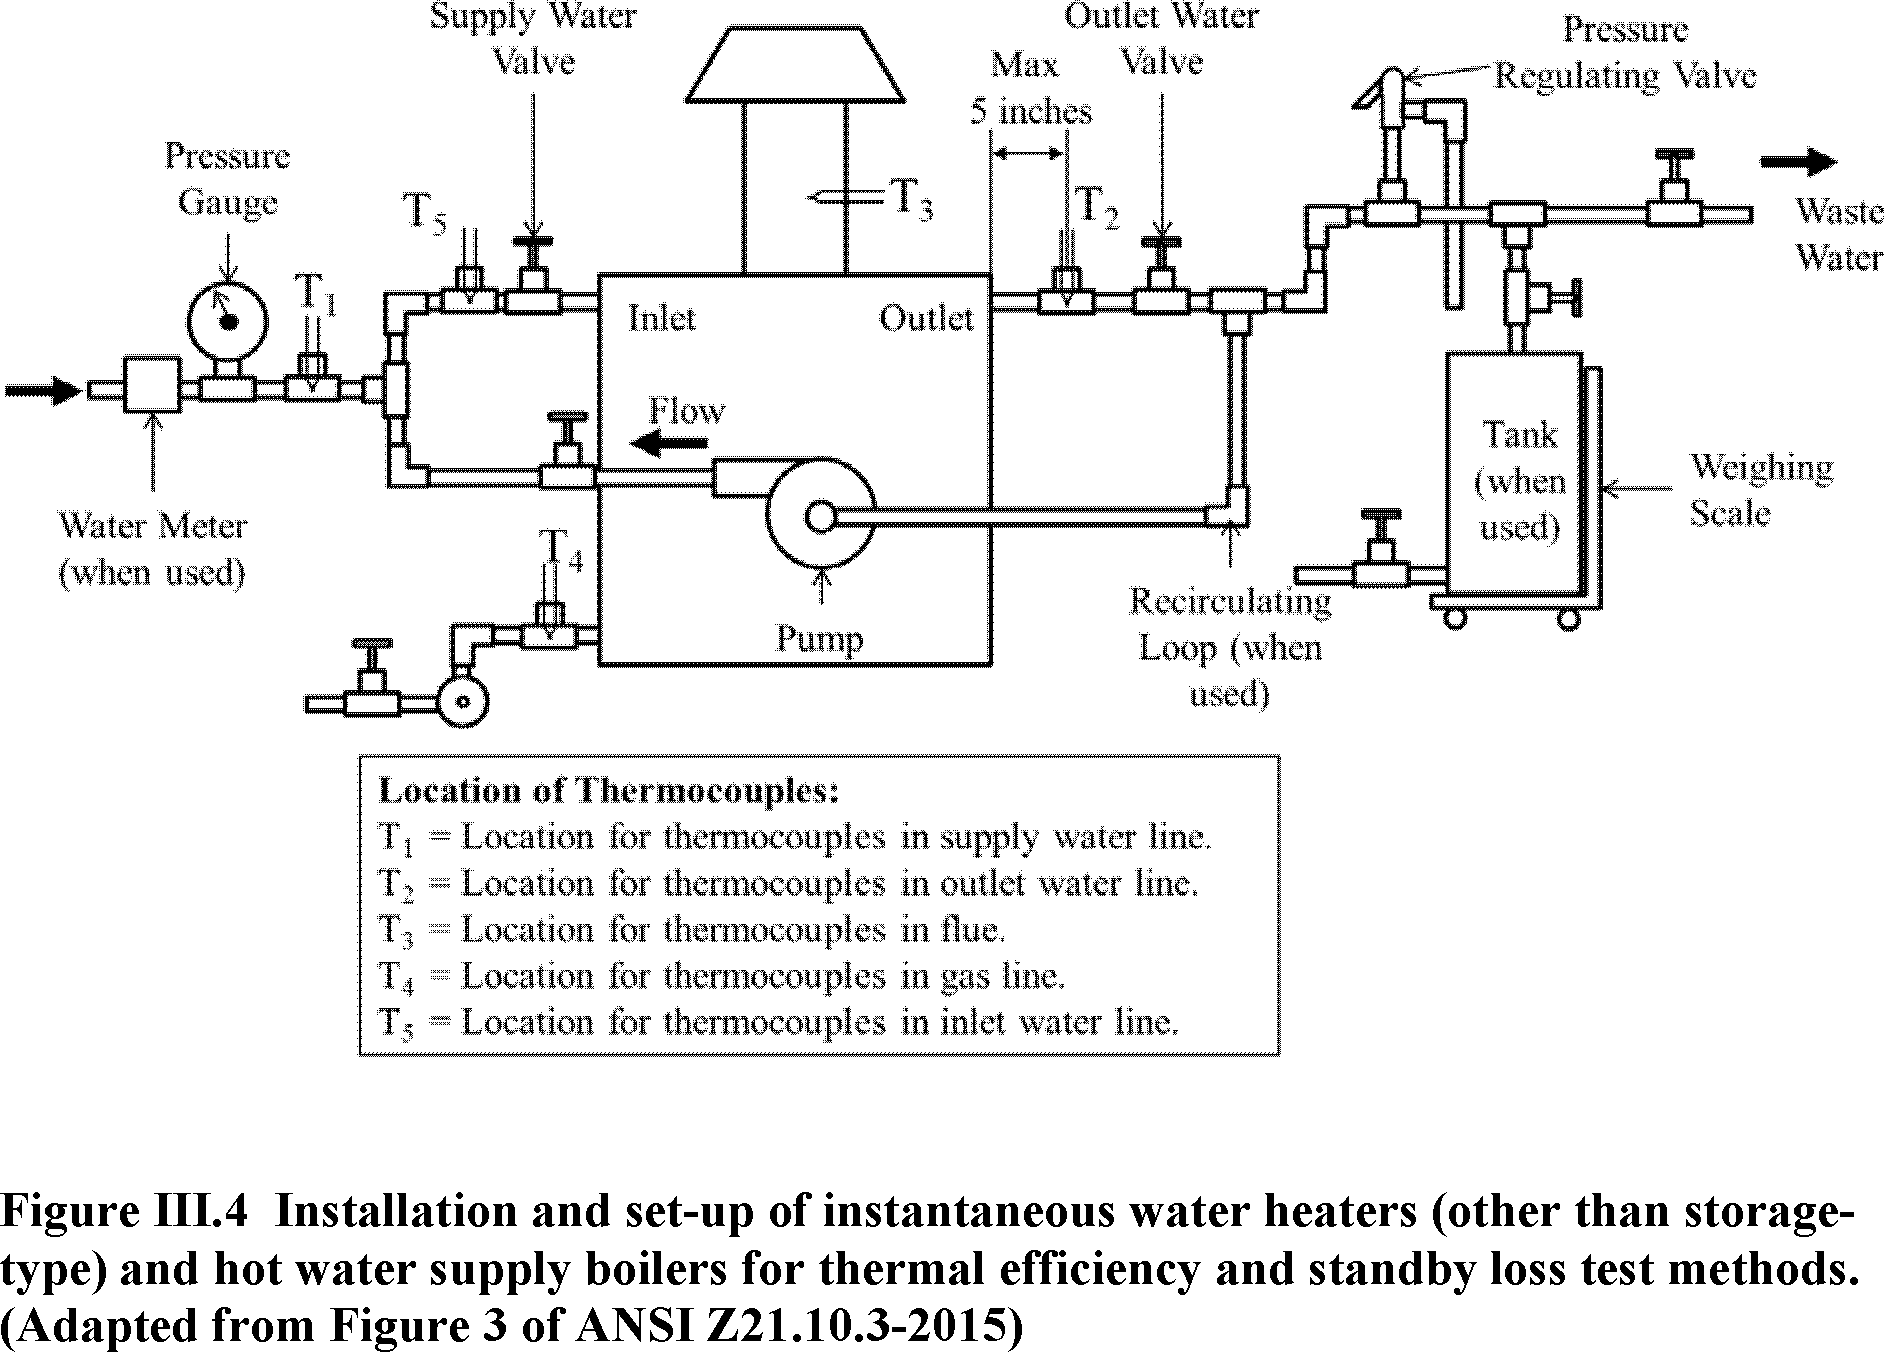 medium resolution of figure iii 4 and the proposed specifications for the placement of temperature sensors placement of water valves and placement of a recirculating loop